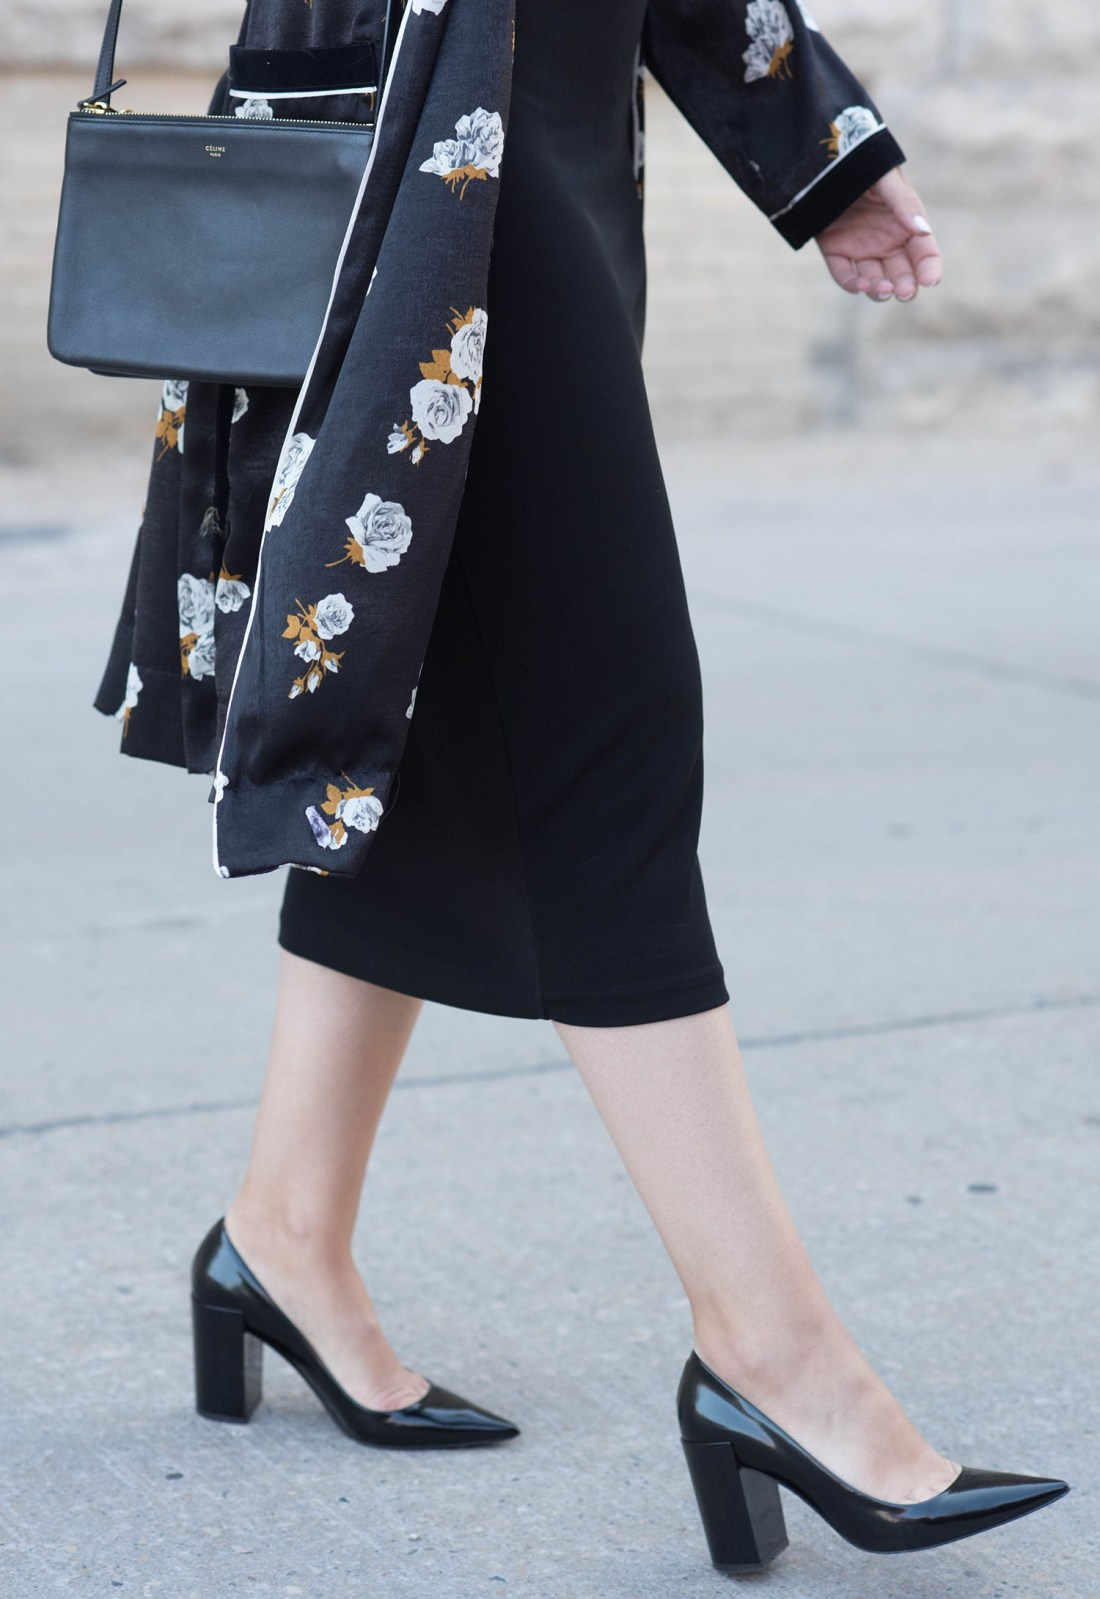 Outfit details on Winnipeg fashion blogger Cee Fardoe of Coco & Vera, wearing a Celine trio bag, Zara combined kimono and Pierre Hardy block heels